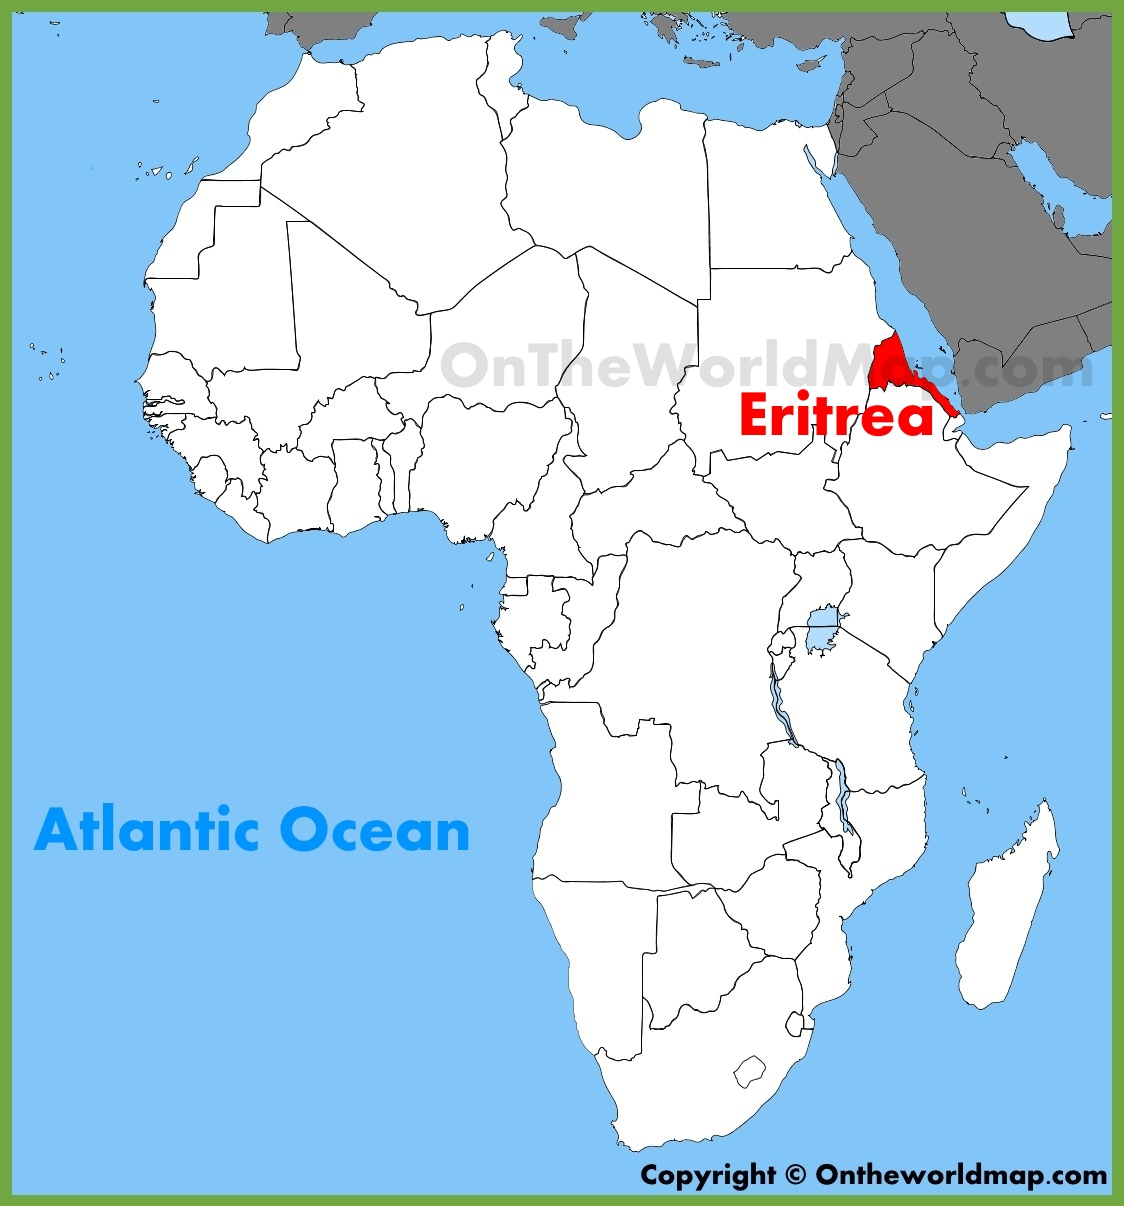 Eritrea location on the Africa map